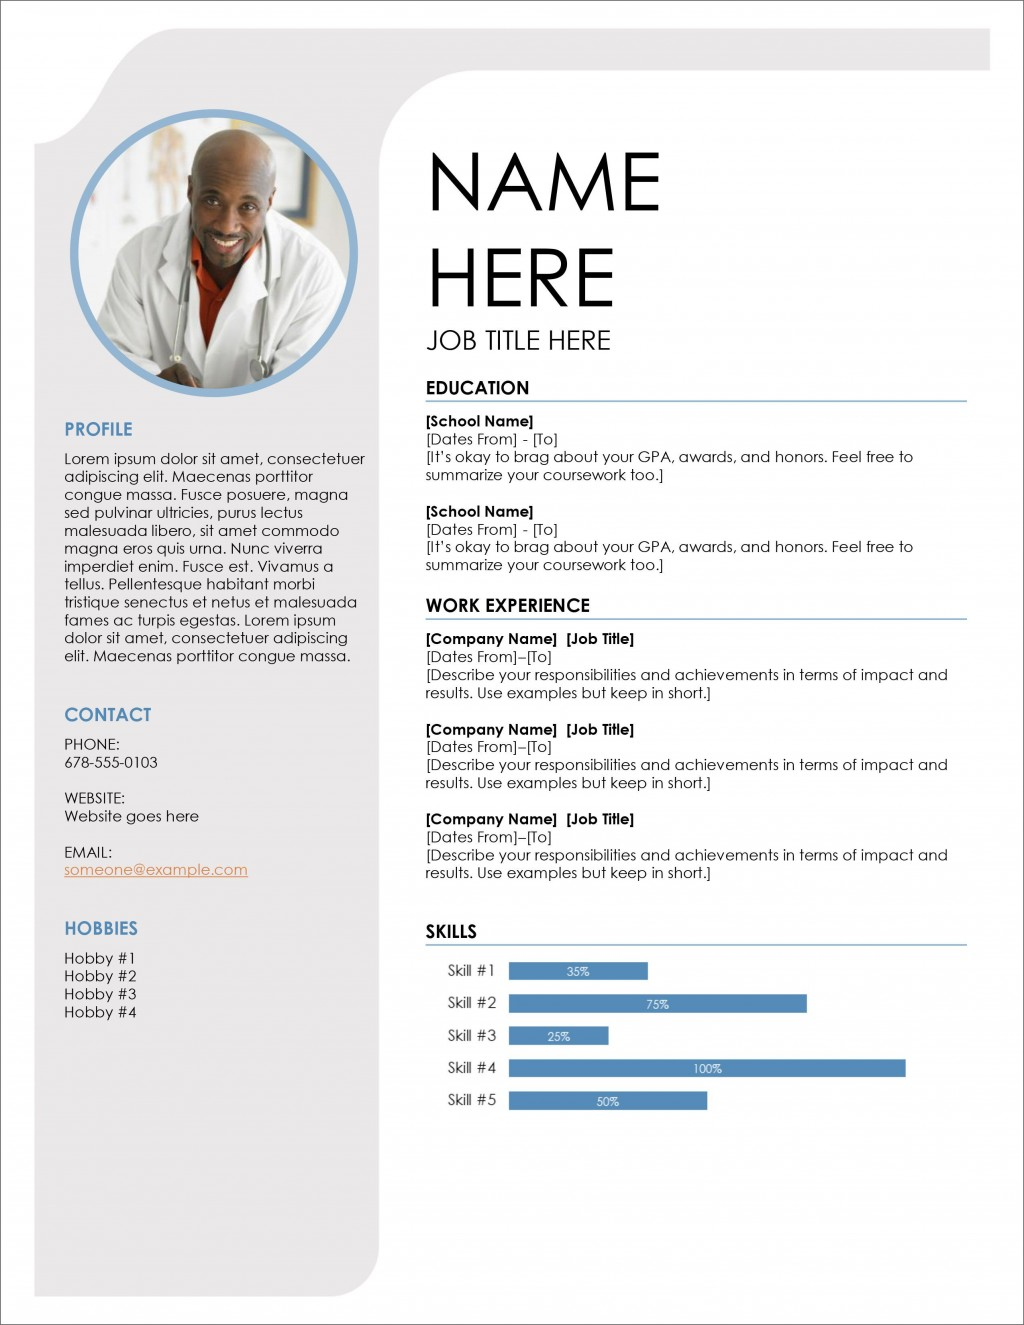 006 Fearsome Professional Resume Template Word Free Download Idea  Cv 2020 With PhotoLarge